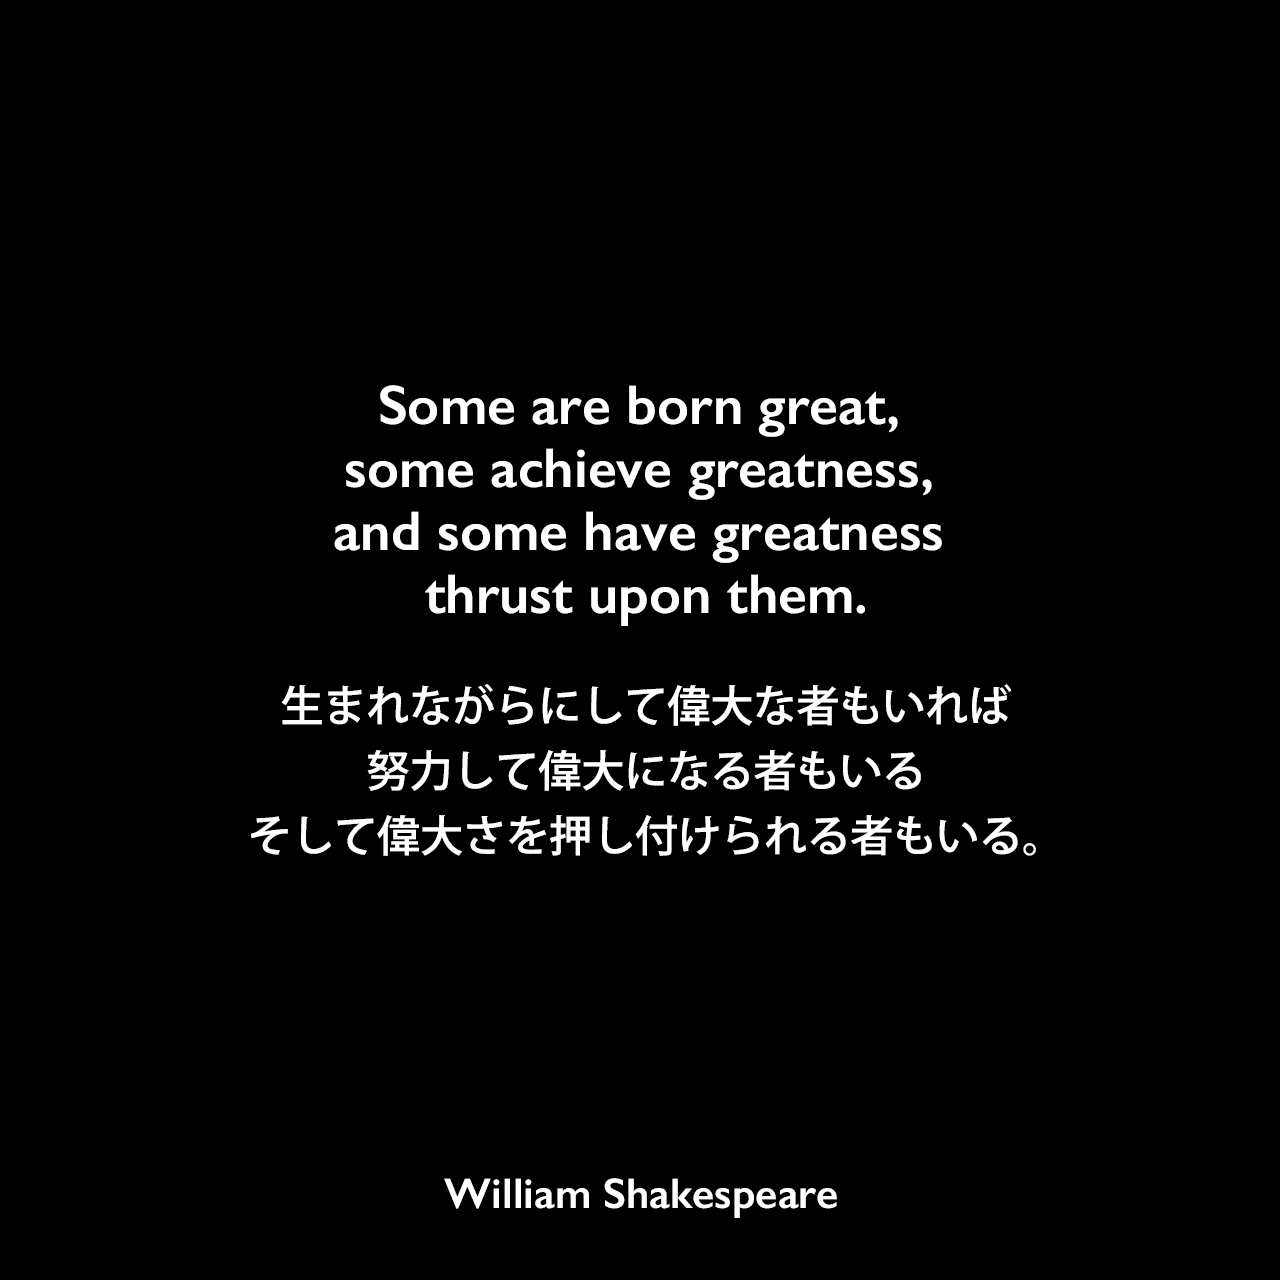 Some are born great, some achieve greatness, and some have greatness thrust upon them.生まれながらにして偉大な者もいれば、努力して偉大になる者もいる、そして偉大さを押し付けられる者もいる。William Shakespeare